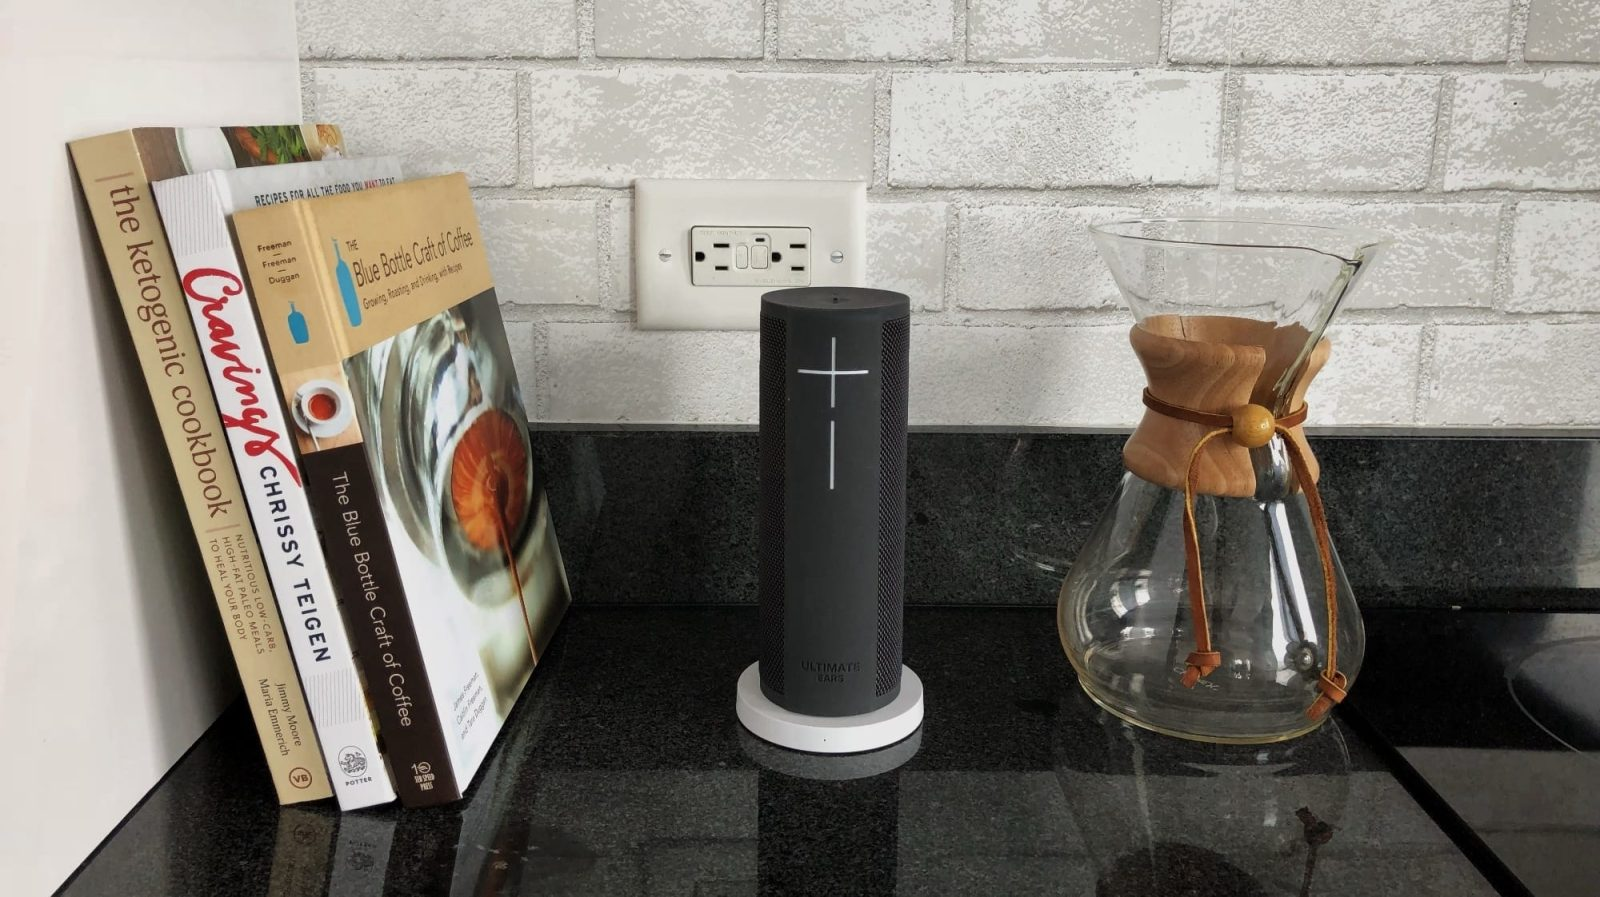 Review: Ultimate Ears' latest speaker with Alexa on Blast - 9to5Mac